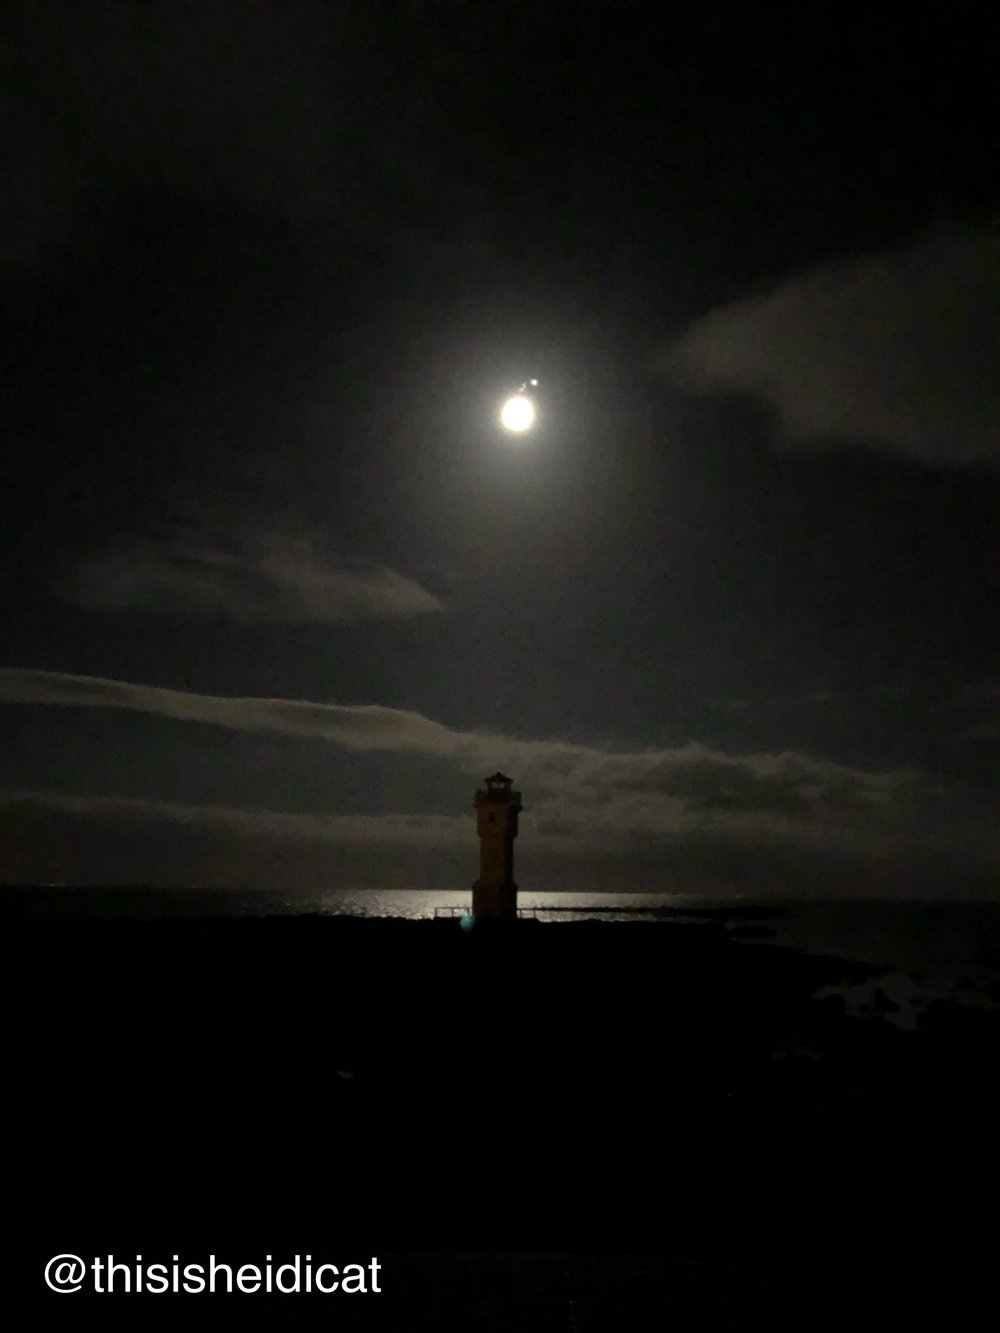 No Northern Lights here, but this is the stop with the Lighthouses and the full moon. Most people stayed on the bus for this last stop but I was out there capturing what I could while listening to the waves crash upon the rocks.